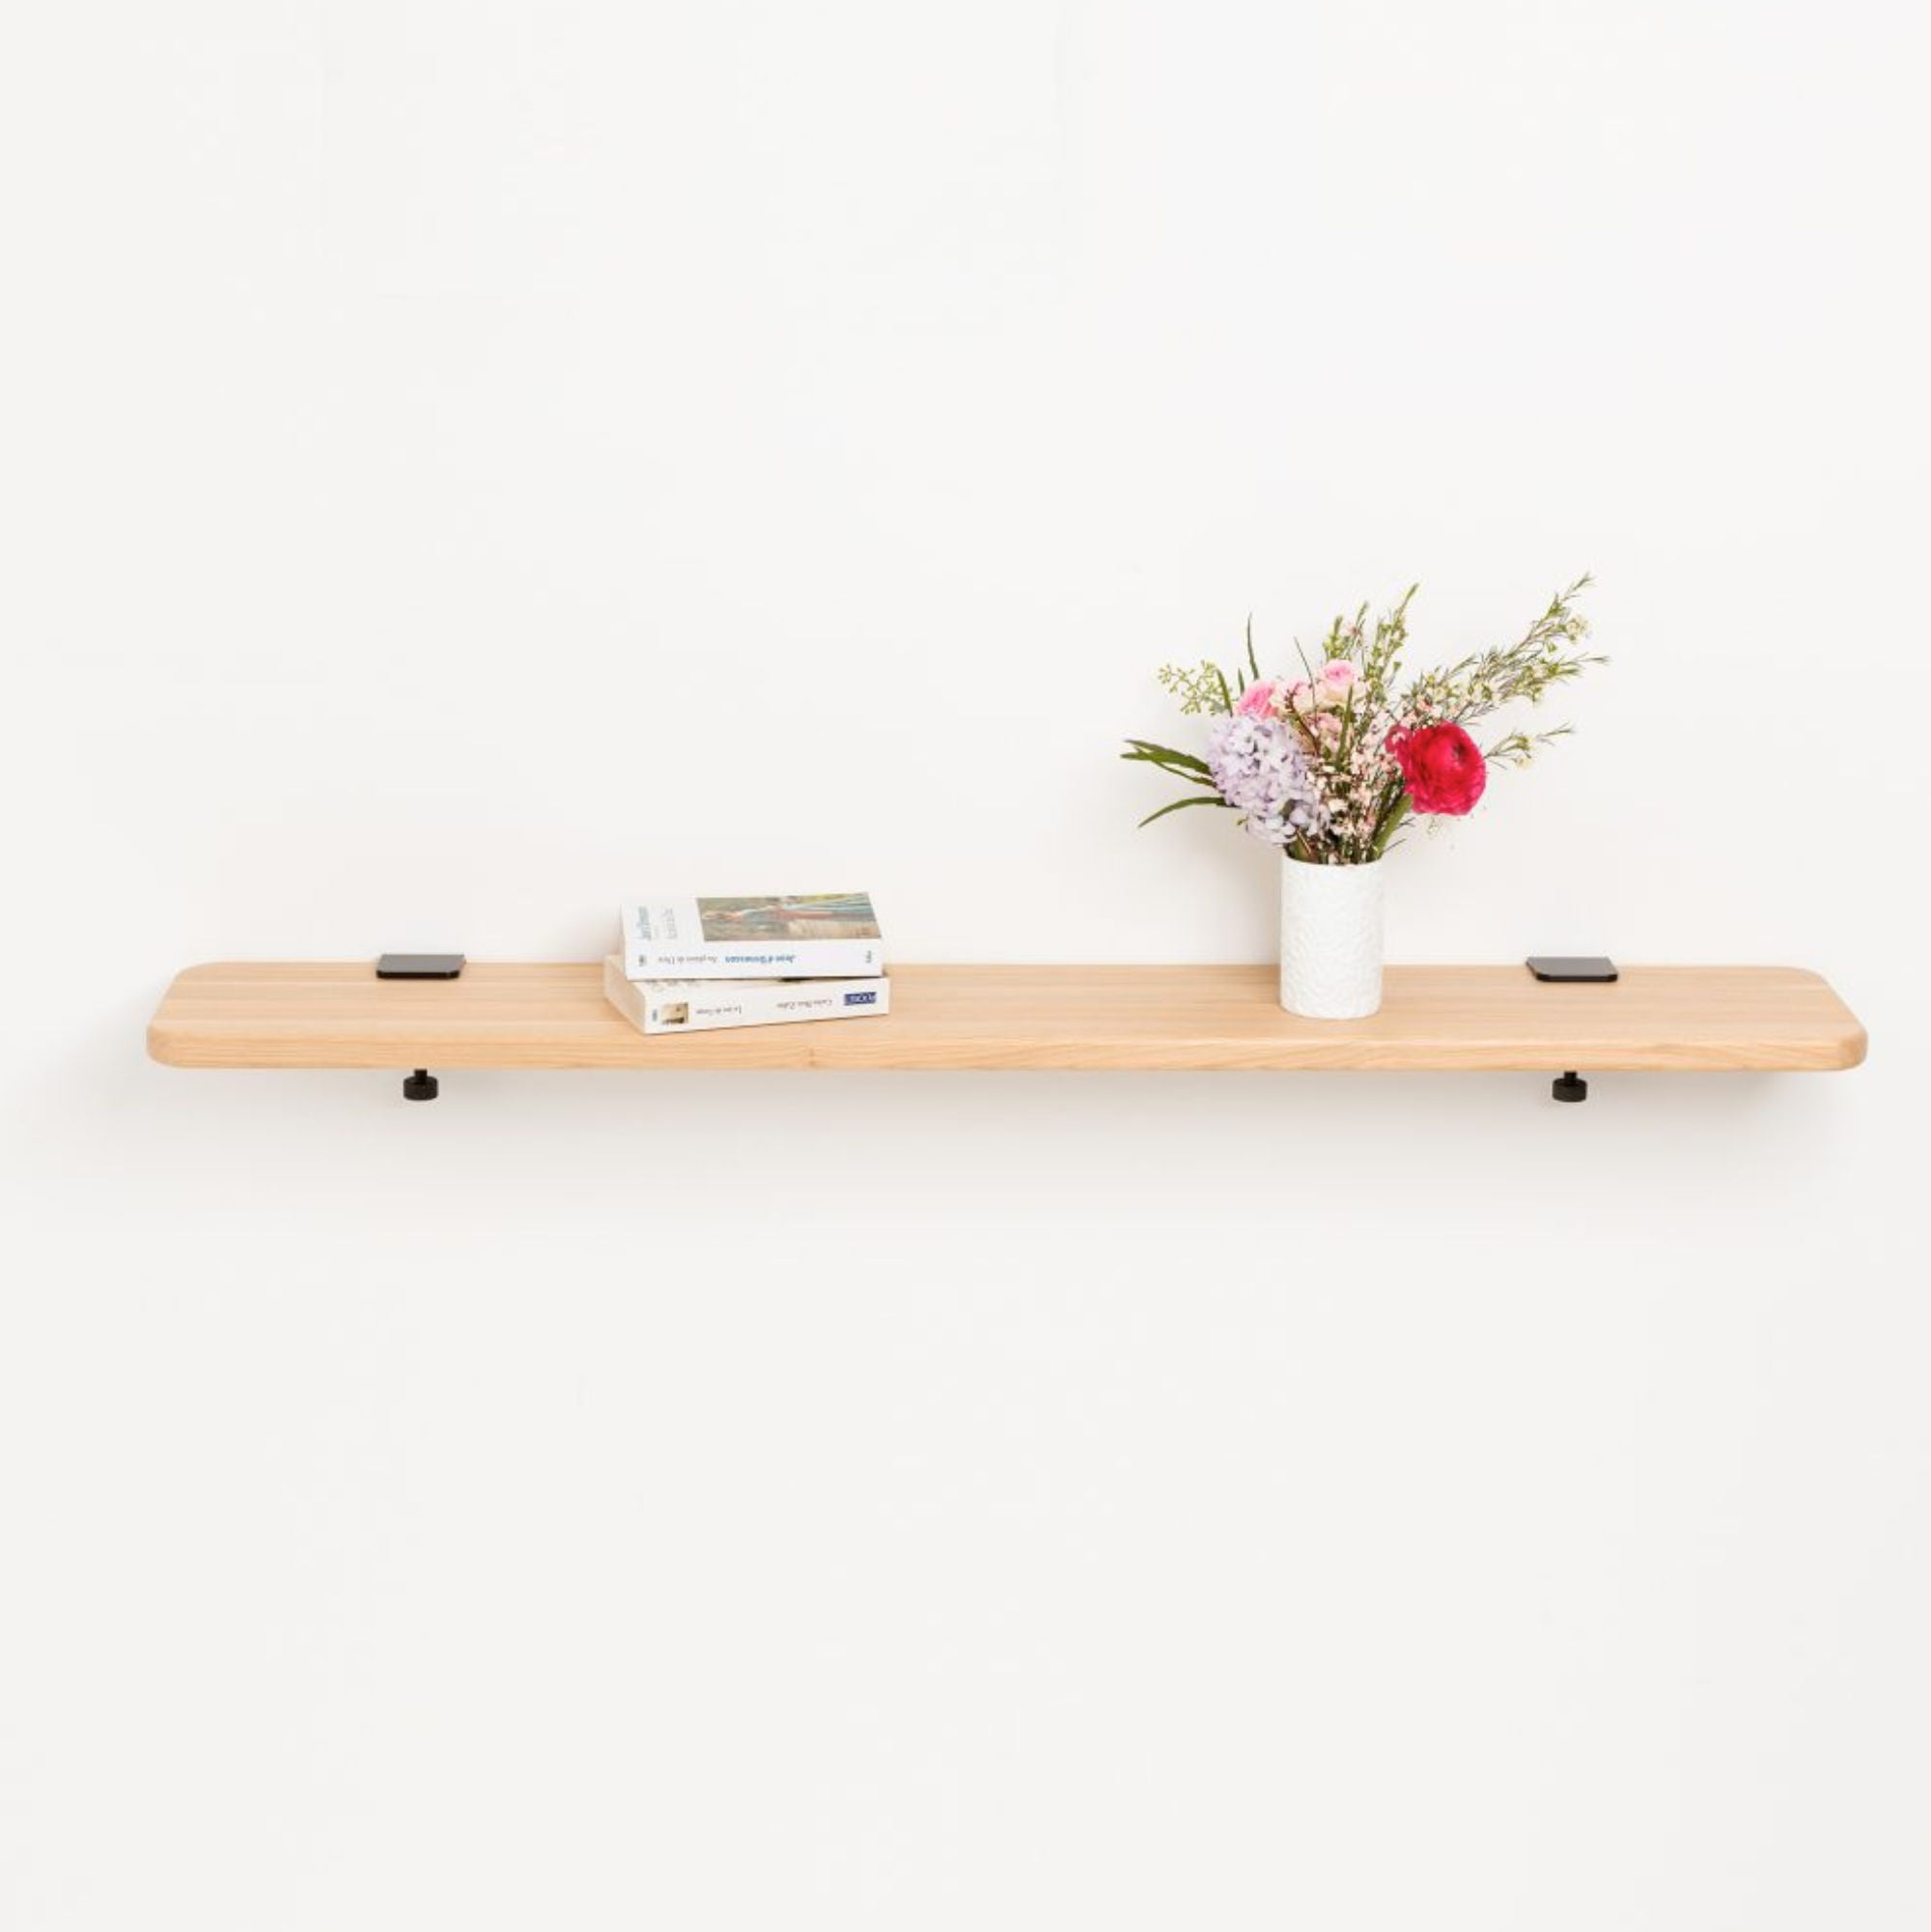 Tiptop Solid oak shelf, 120 * 20cm